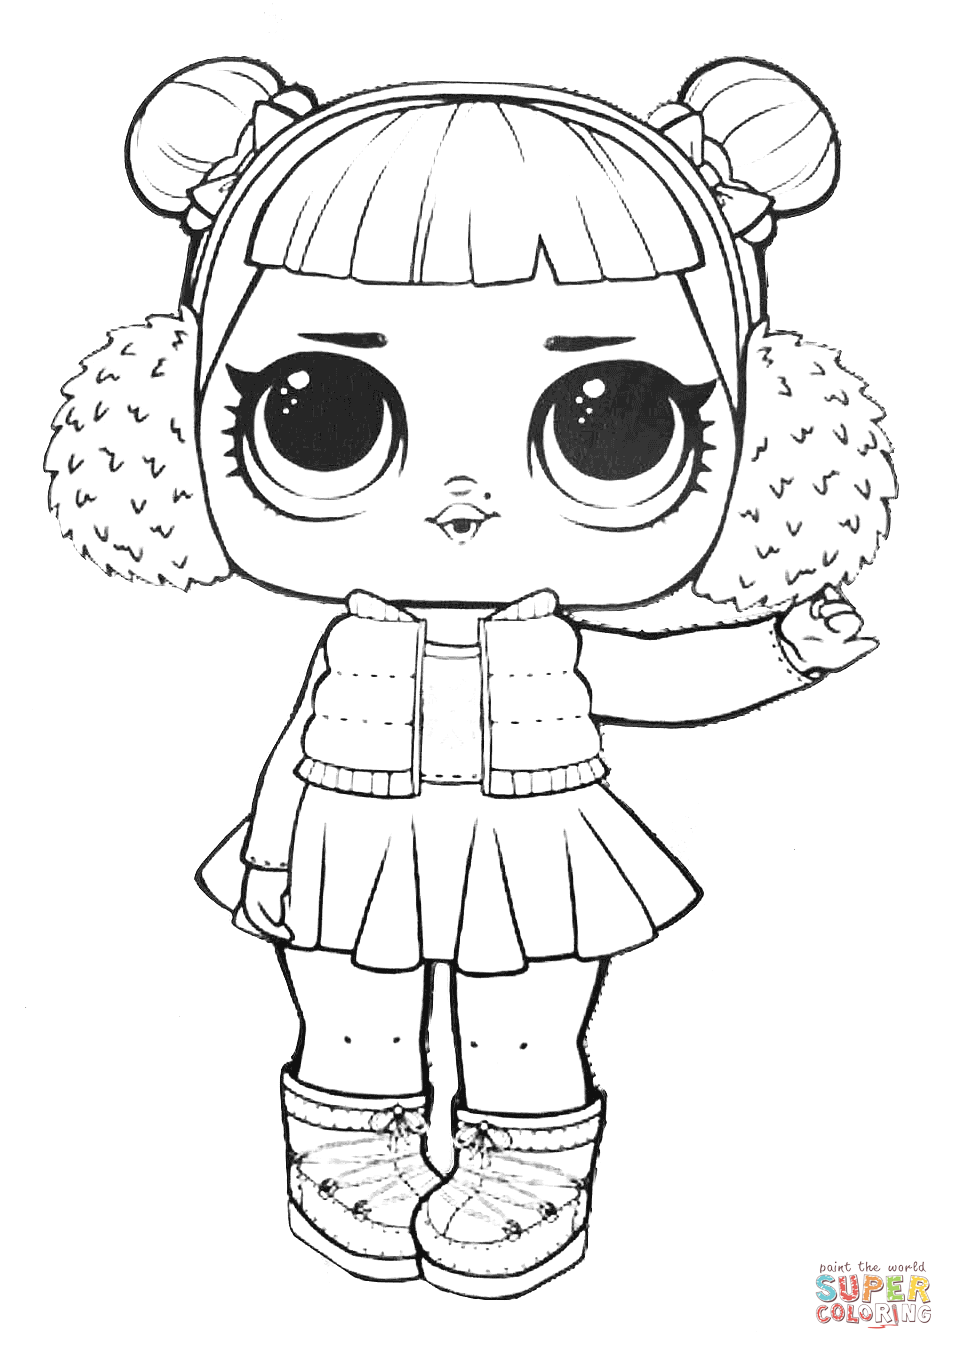 Lol Surprise Doll Snow Angel Coloring Page Free Printable Coloring Pages Colorear Pokemon Paginas Para Colorear De Animales Imprimir Dibujos Para Colorear